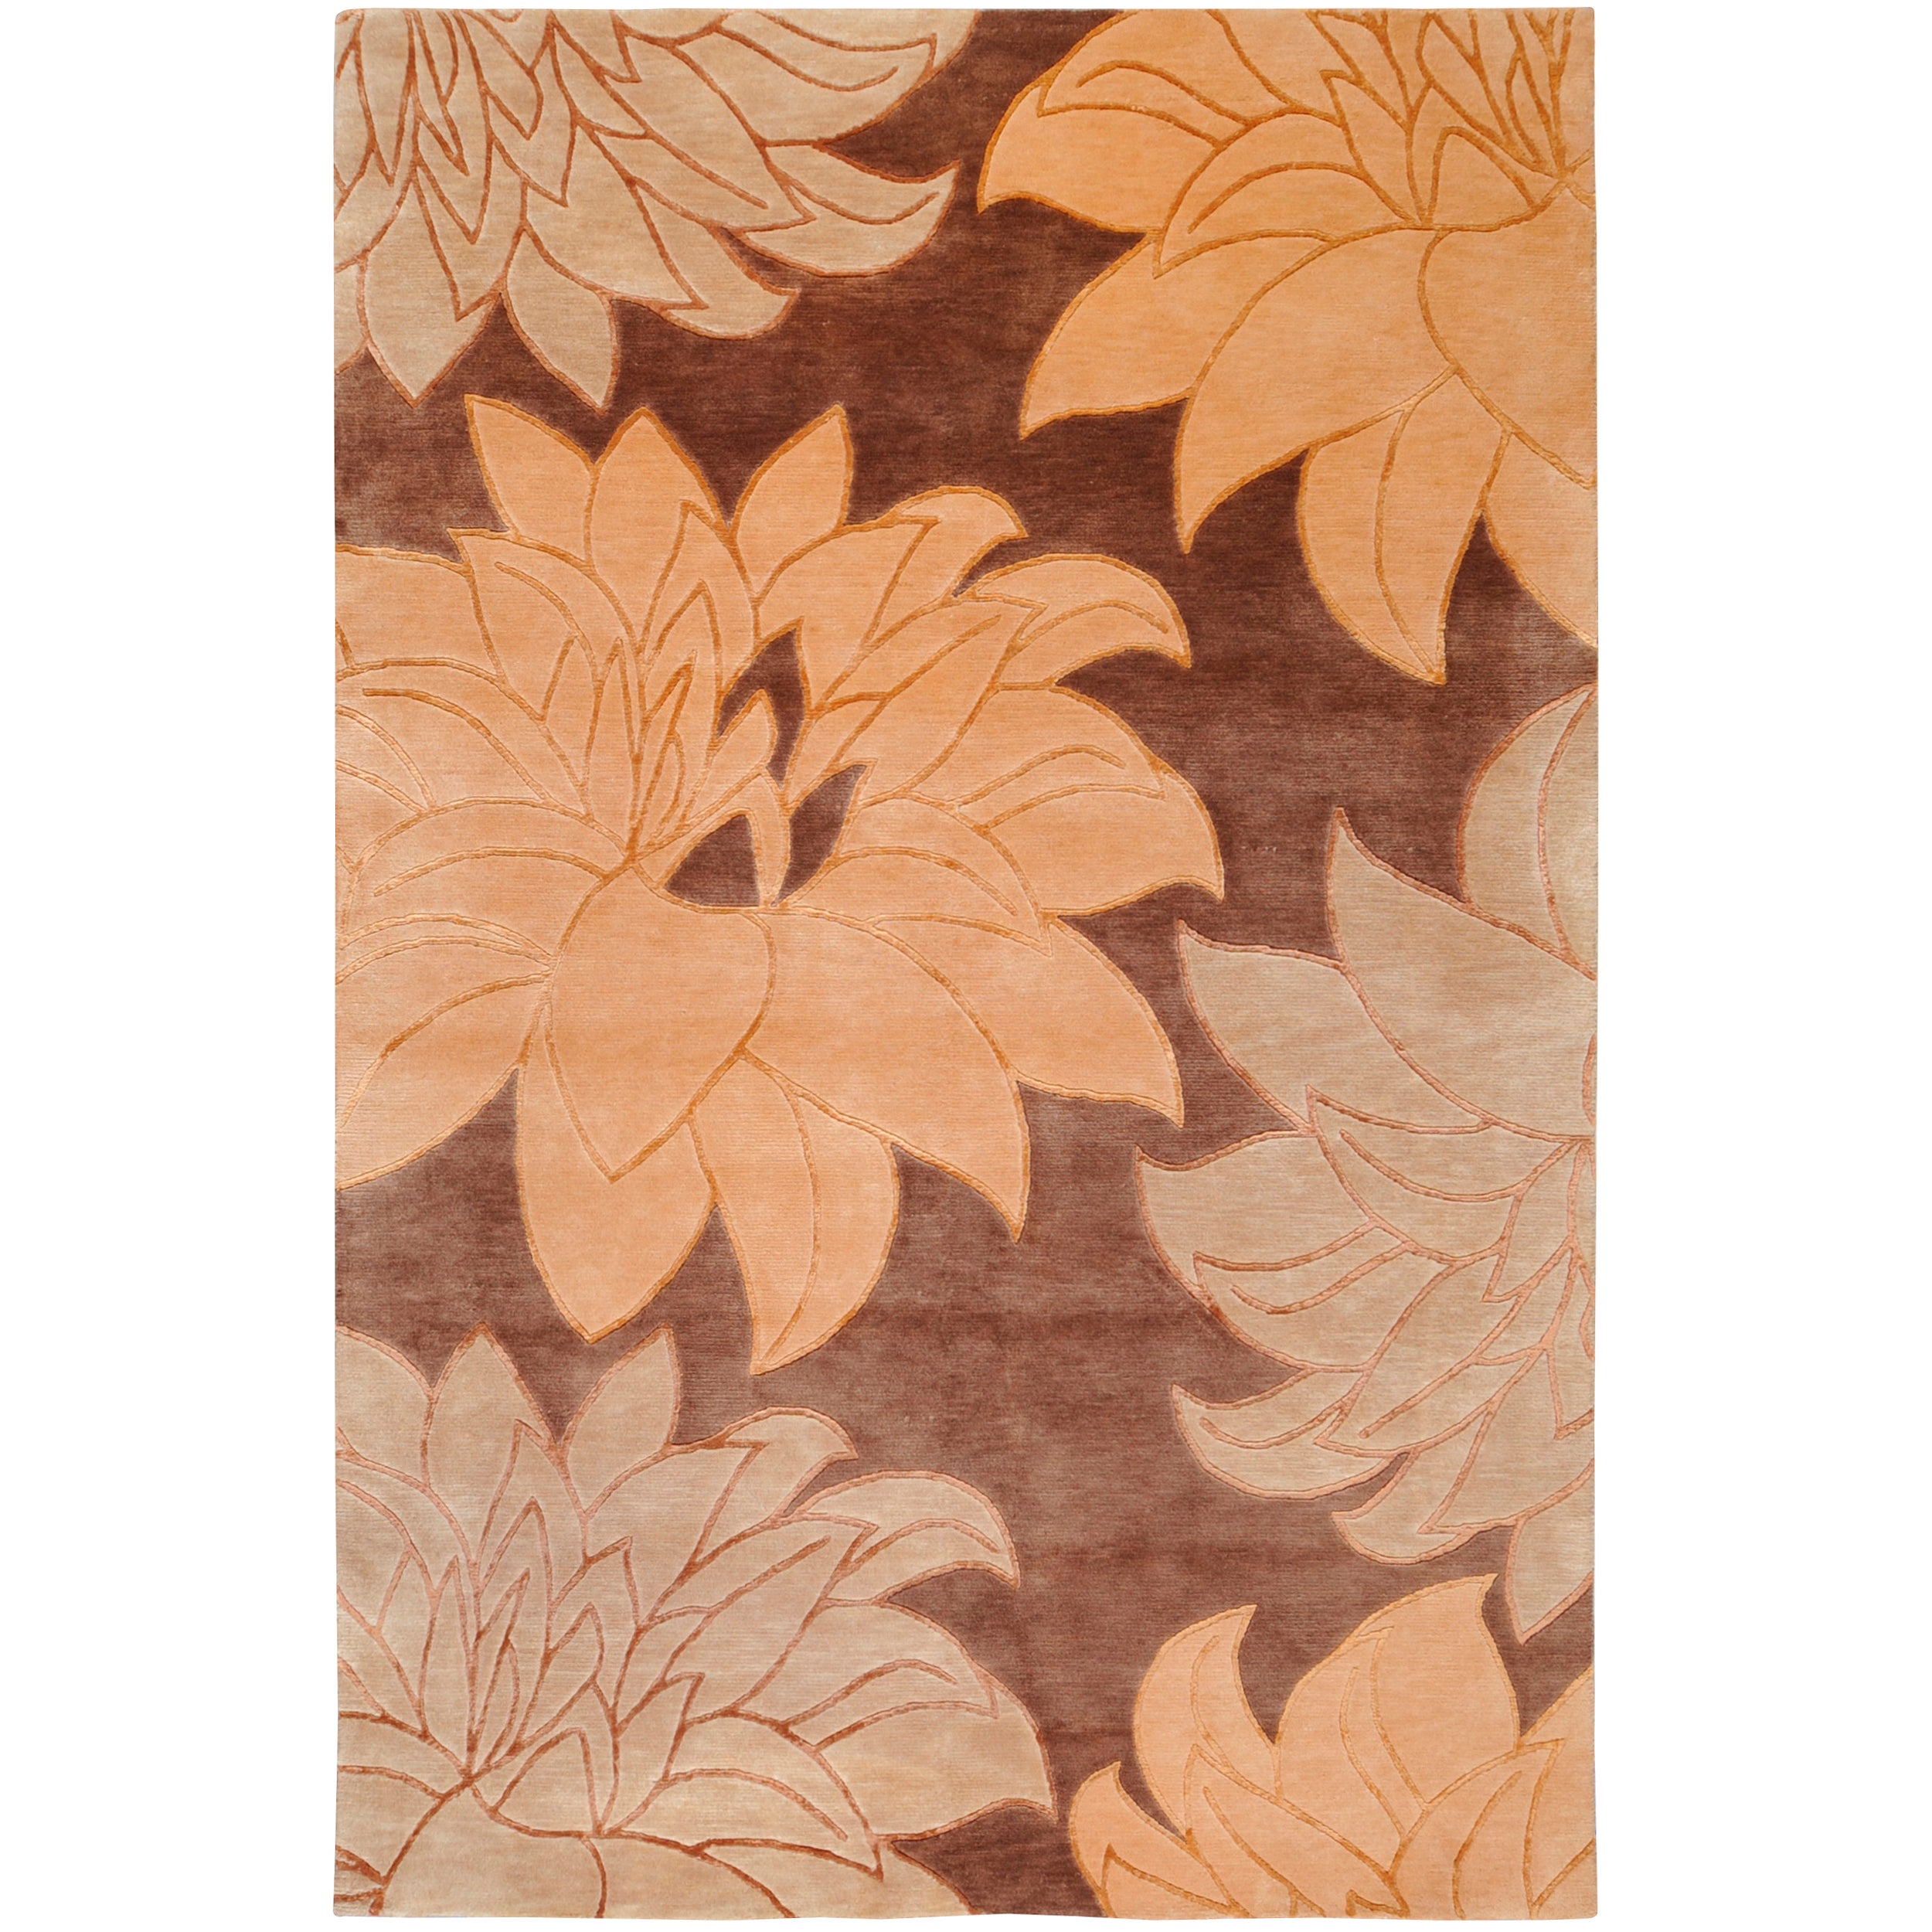 Hand-Knotted Multicolored La Crosse Semi-Worsted Transitional New Zealand Wool Area Rug - 9' x 13'